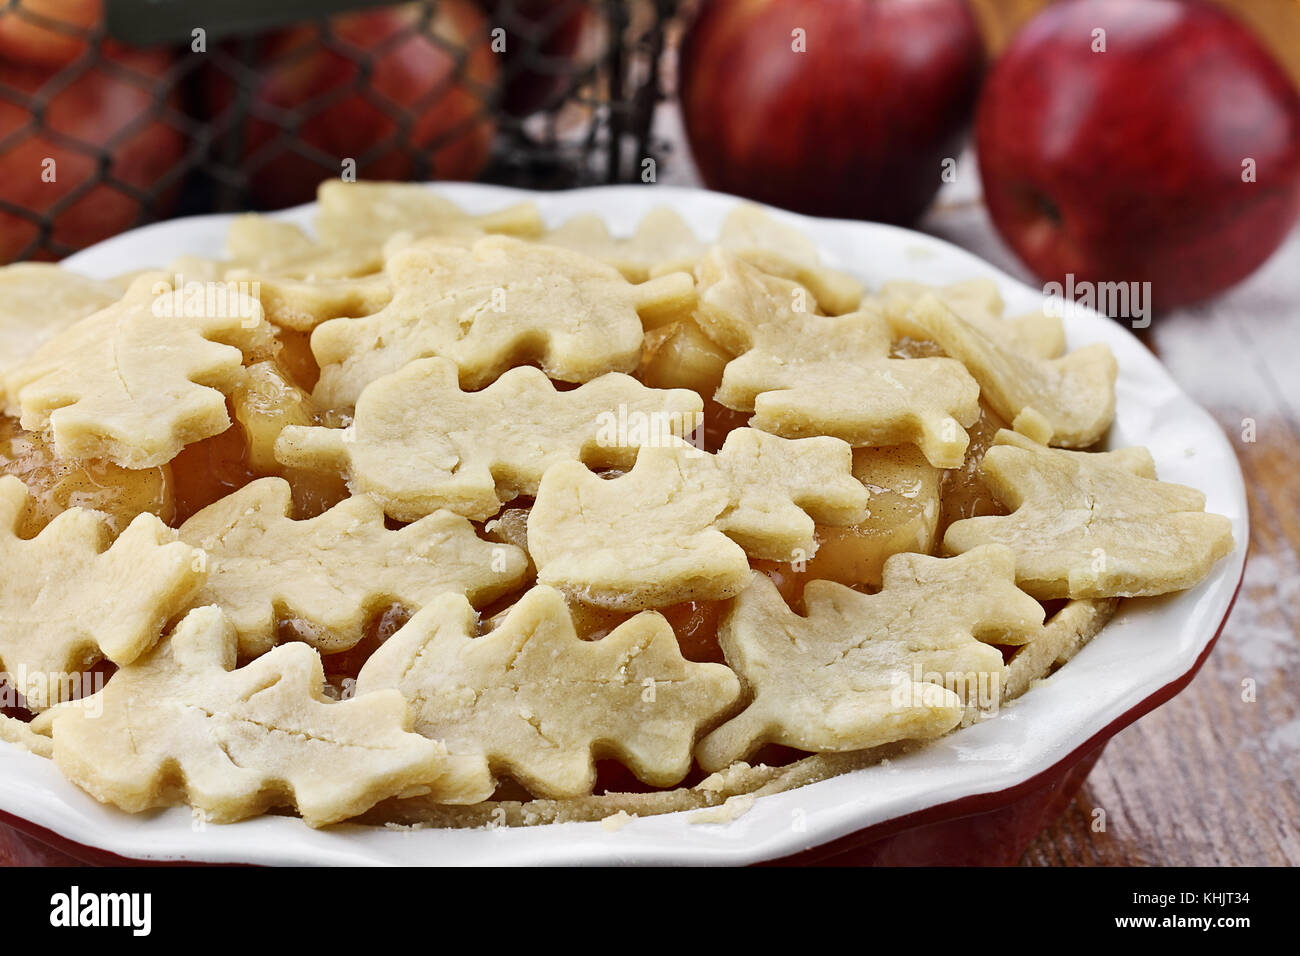 Raw, unbaked apple pie with top crust cut out in the shape of autumn leaves. Shallow death of field with selective - Stock Image